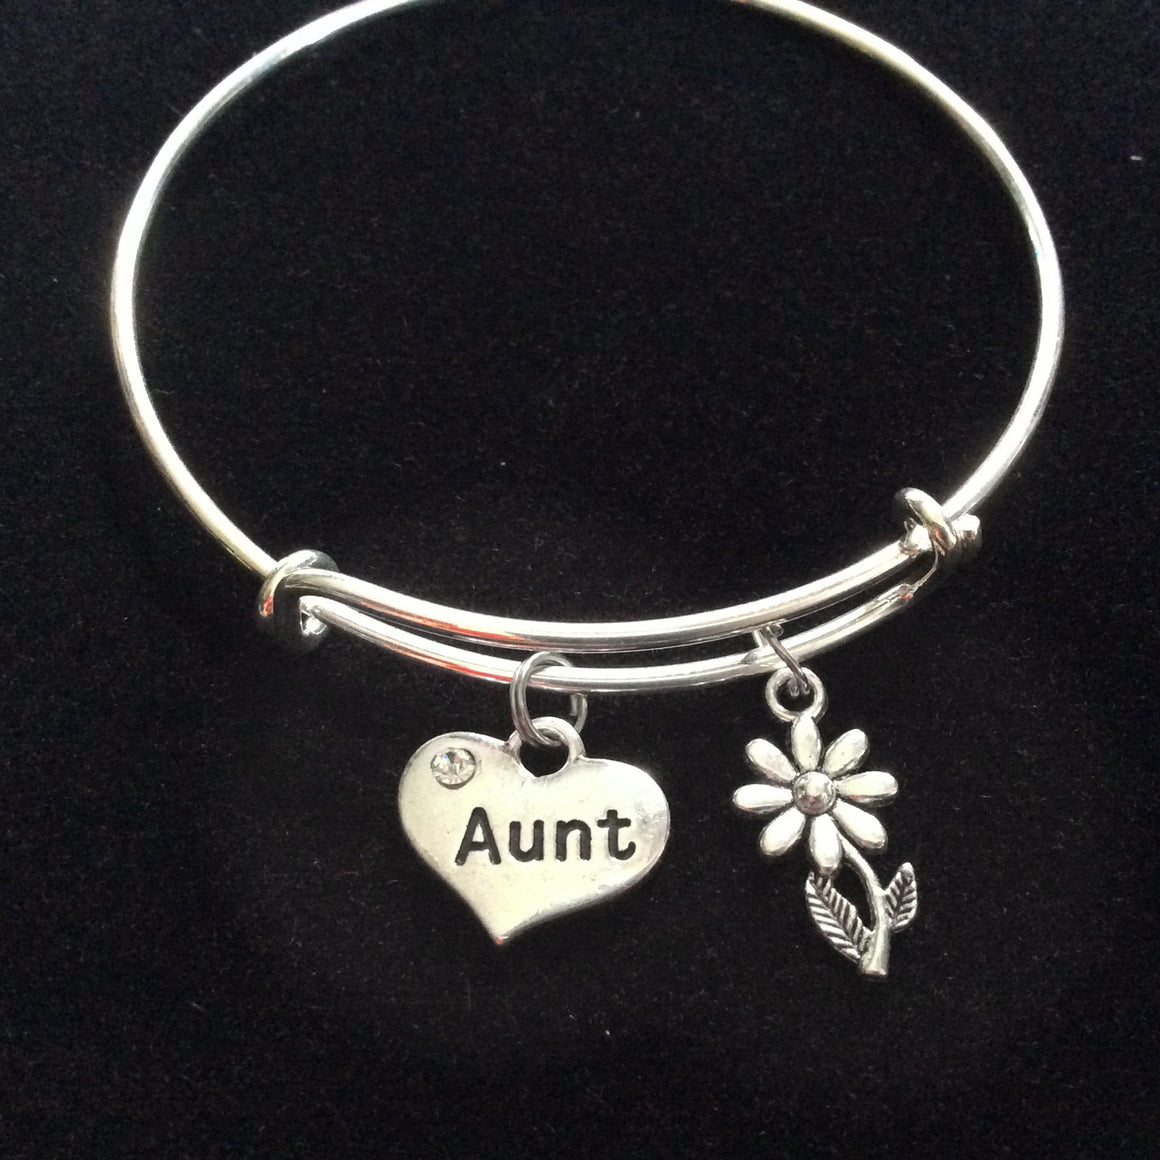 Aunt Charm Bracelet Silver Adjustable Expandable Bangle